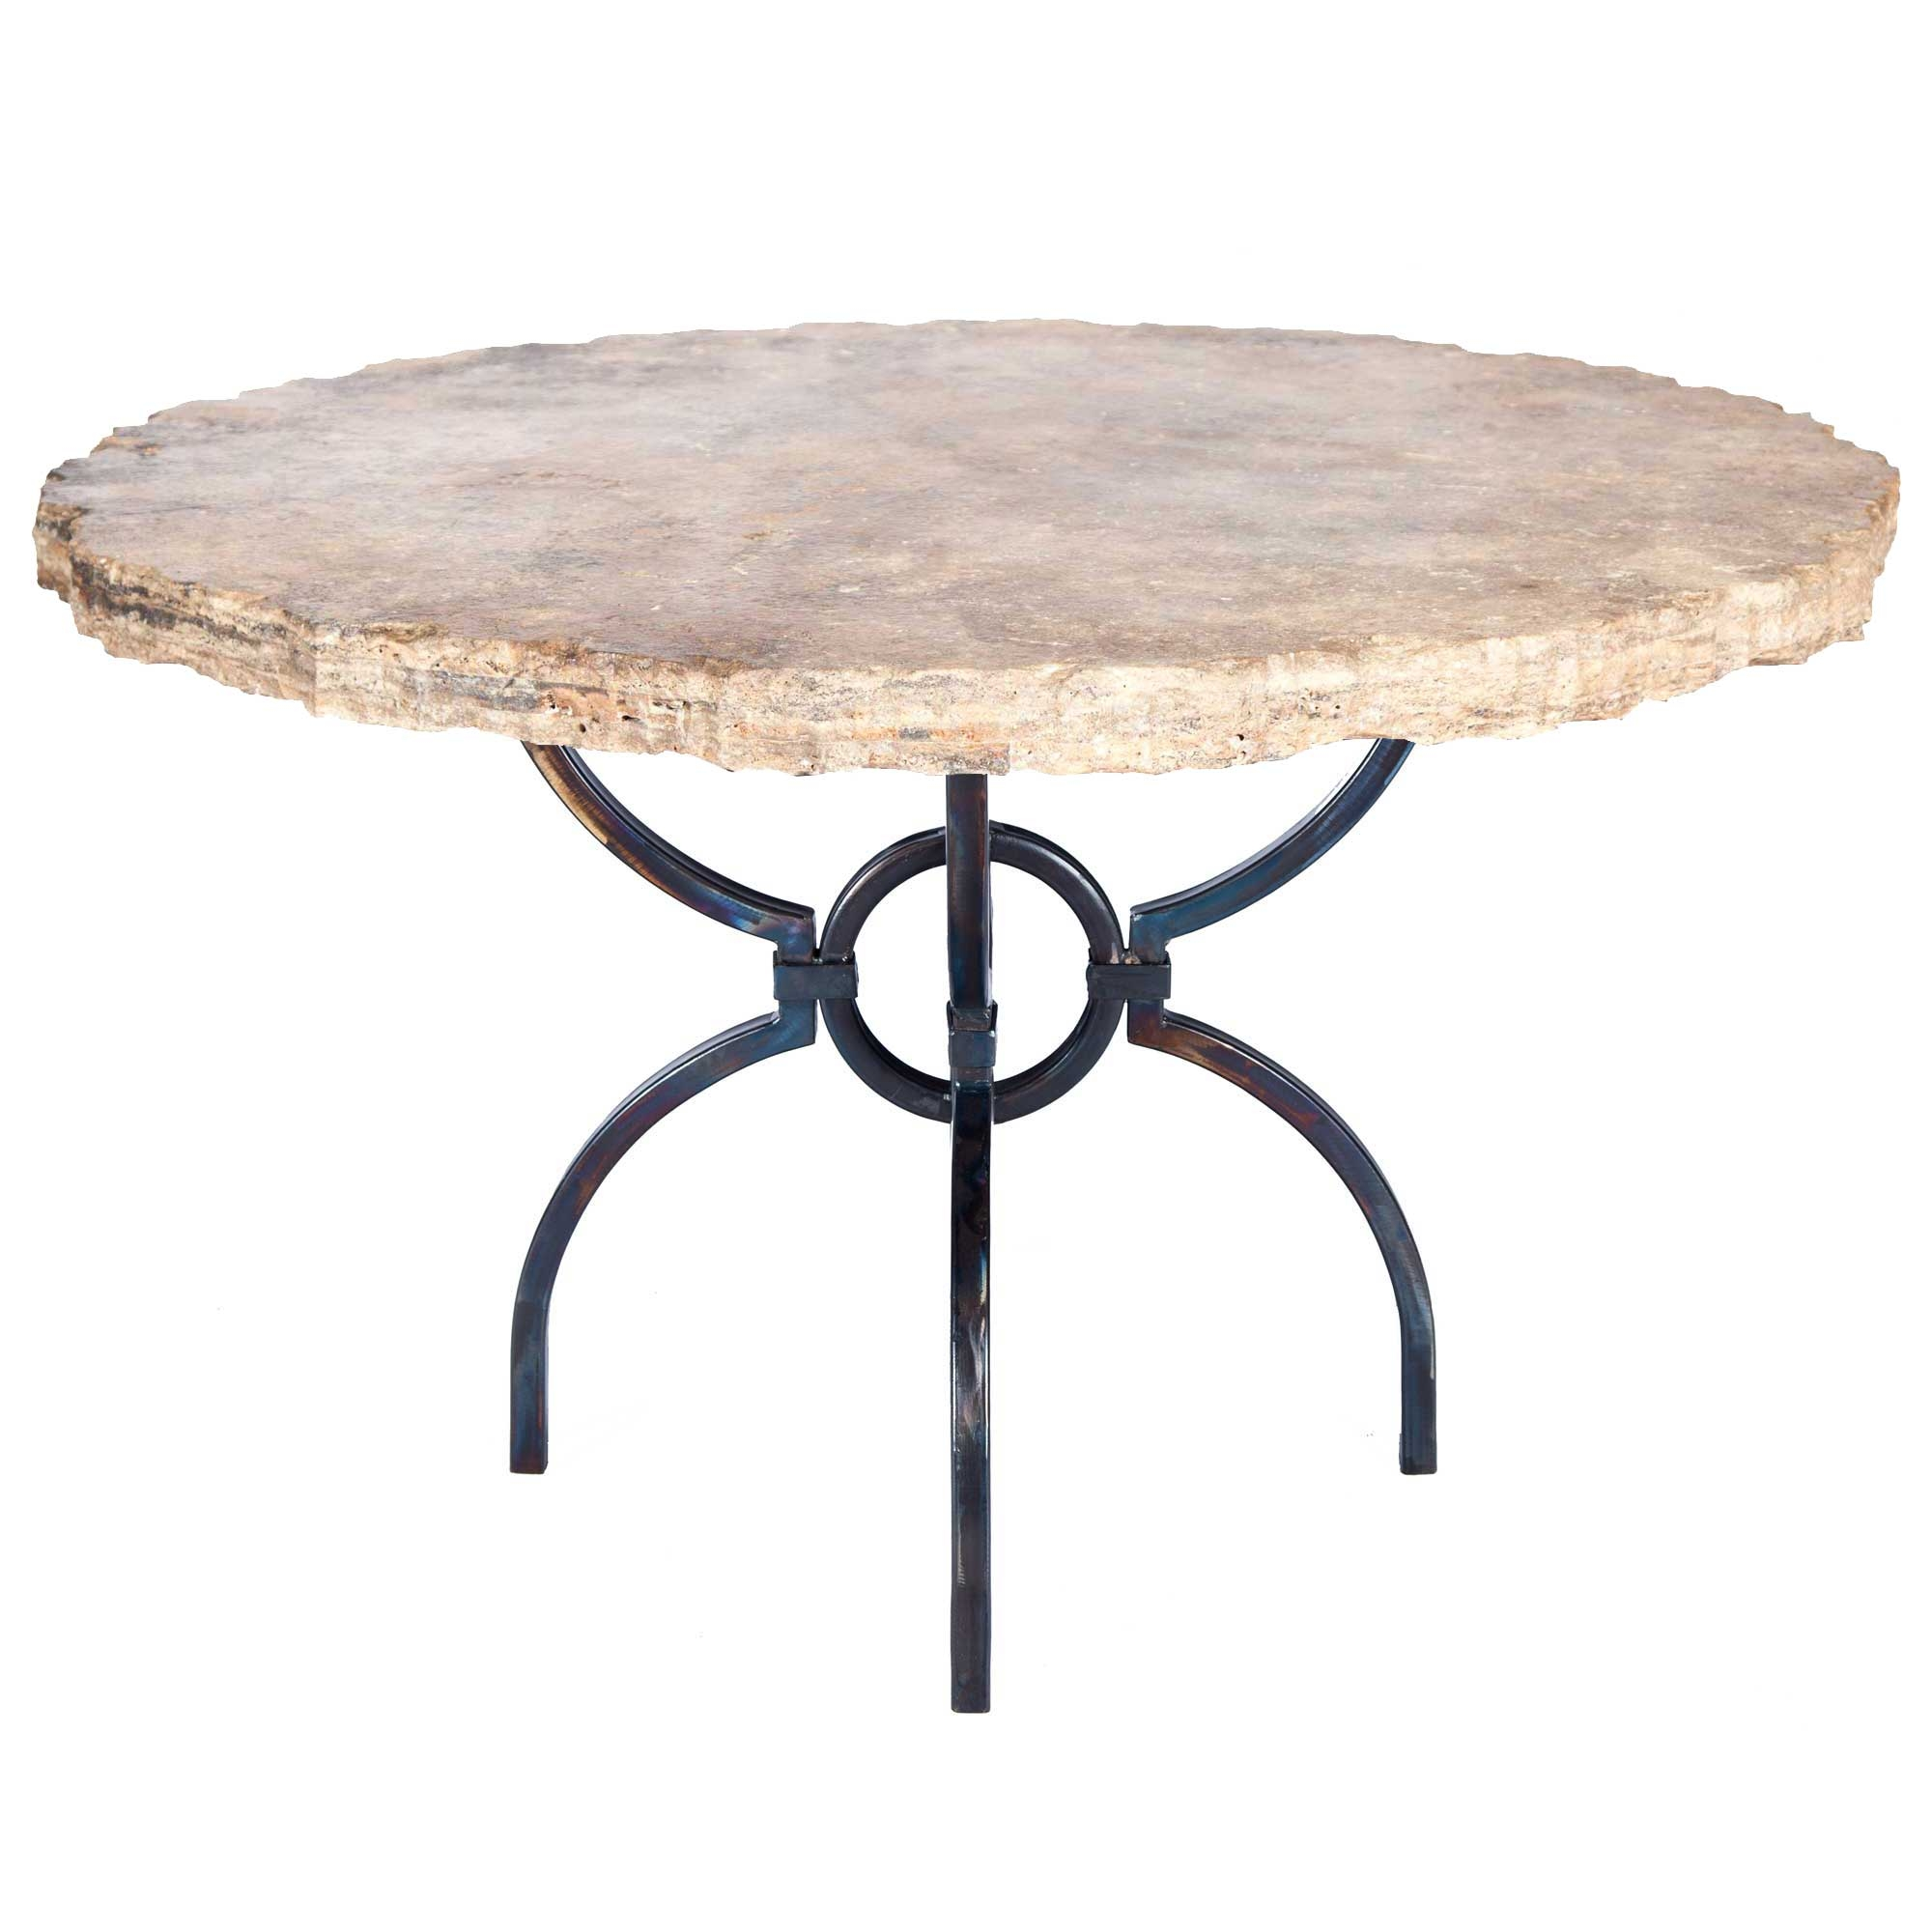 Marble table top - Price 2 365 00